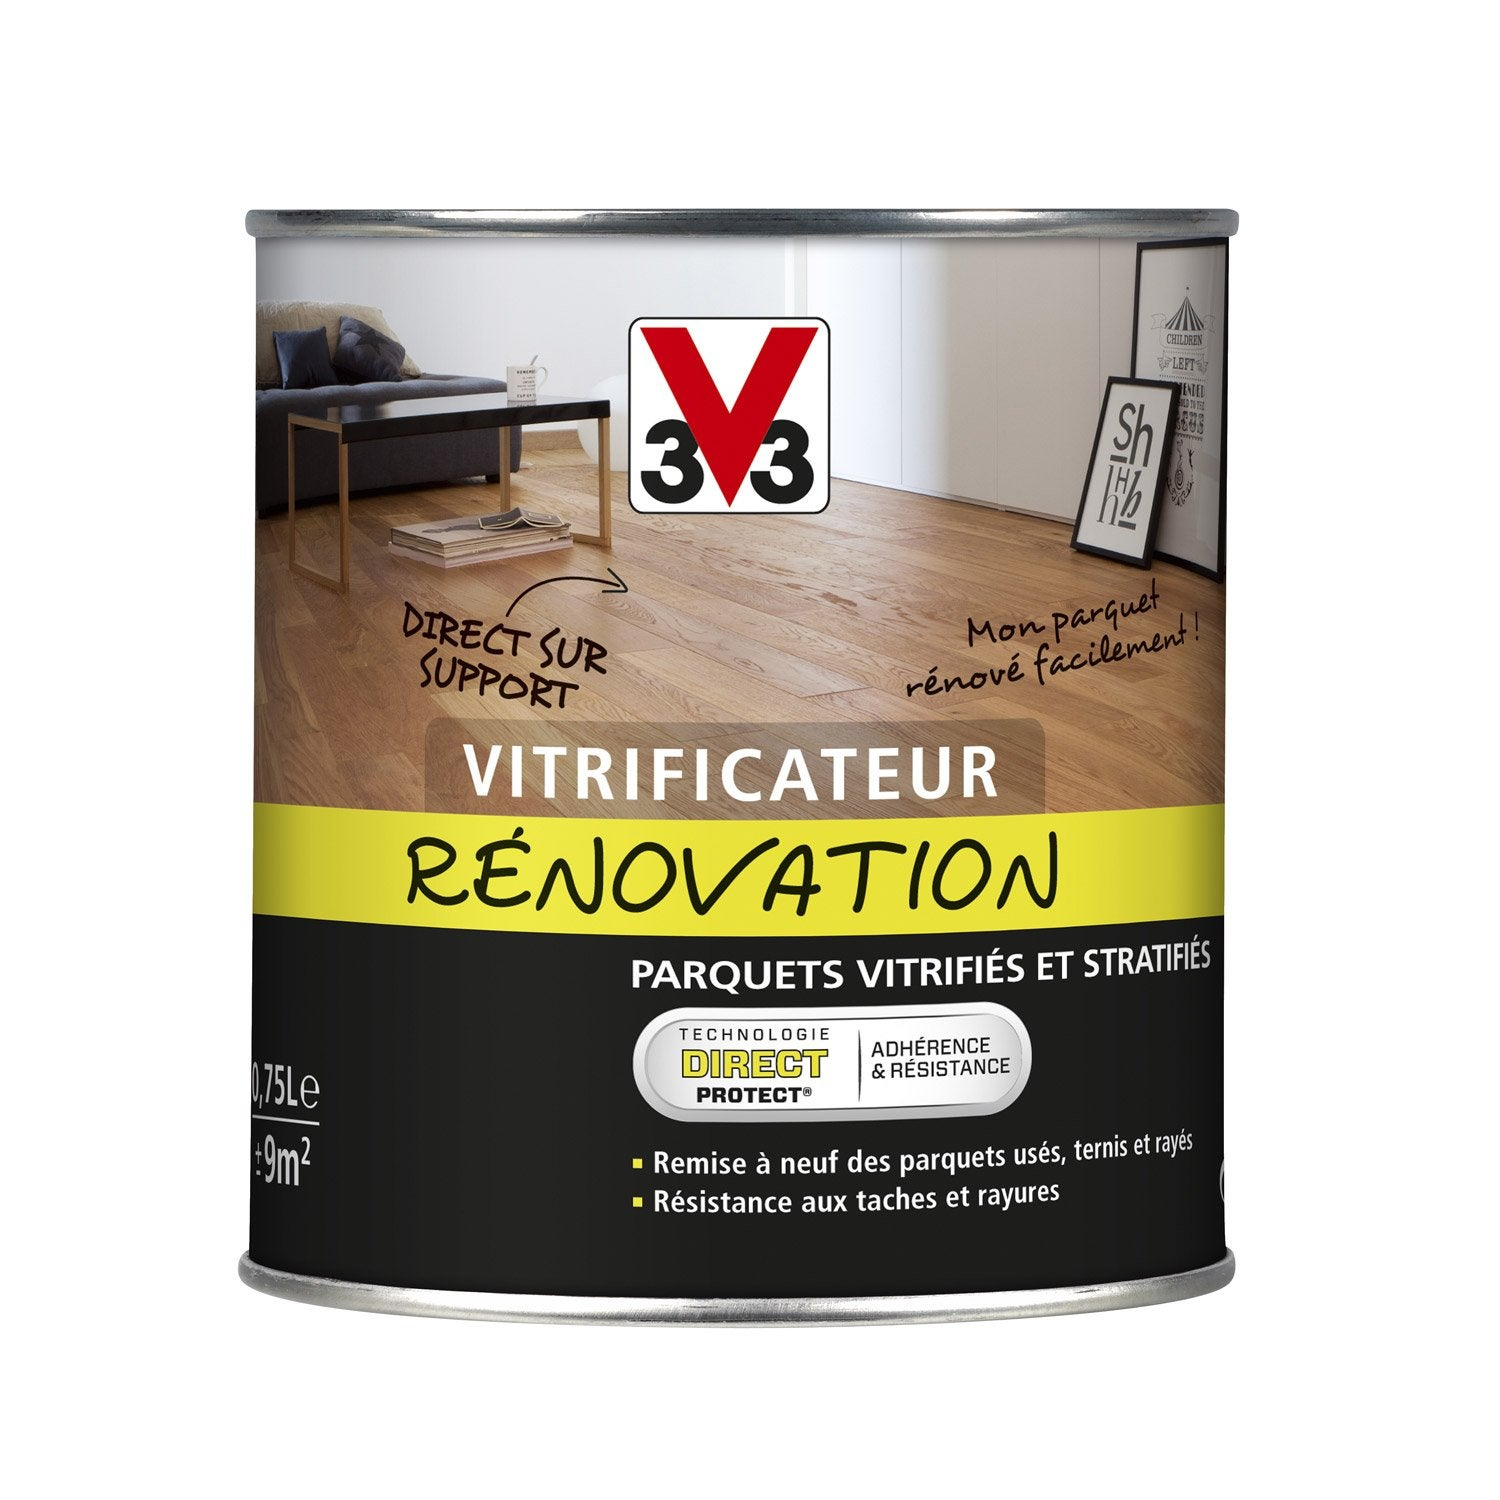 vitrificateur parquet de r novation v33 l incolore. Black Bedroom Furniture Sets. Home Design Ideas